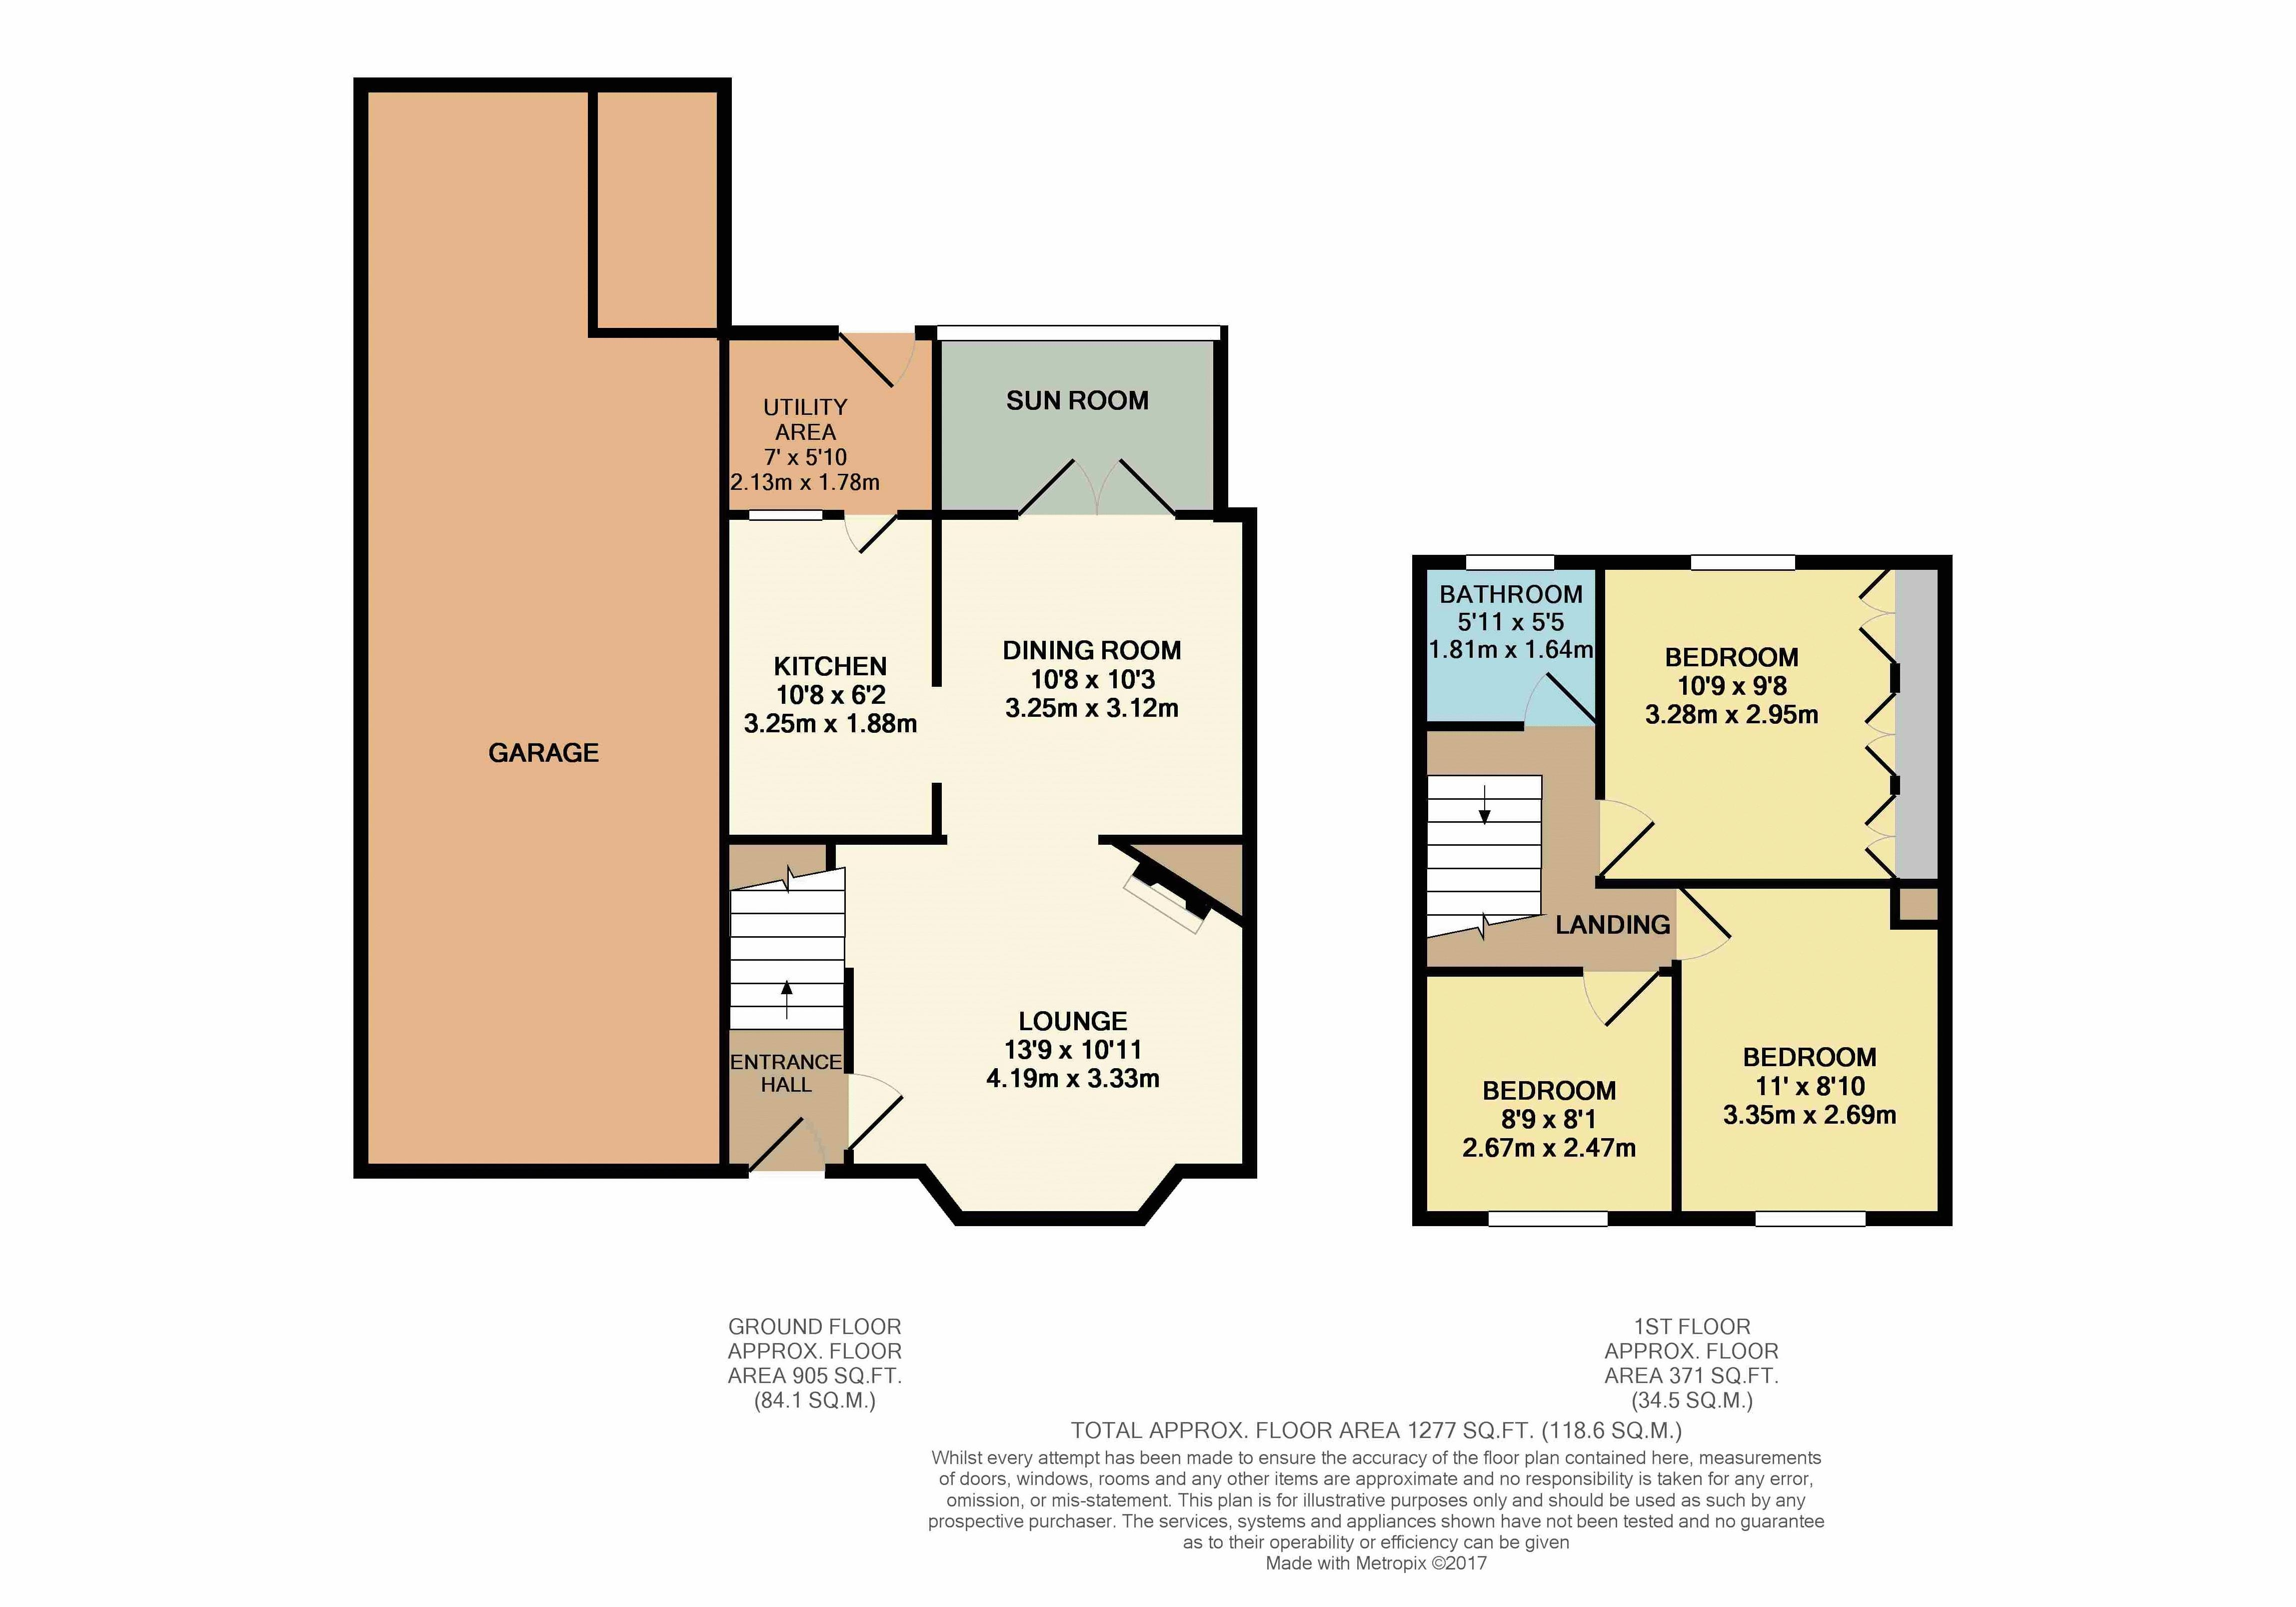 3 Bedroom House For Sale In Dunstable